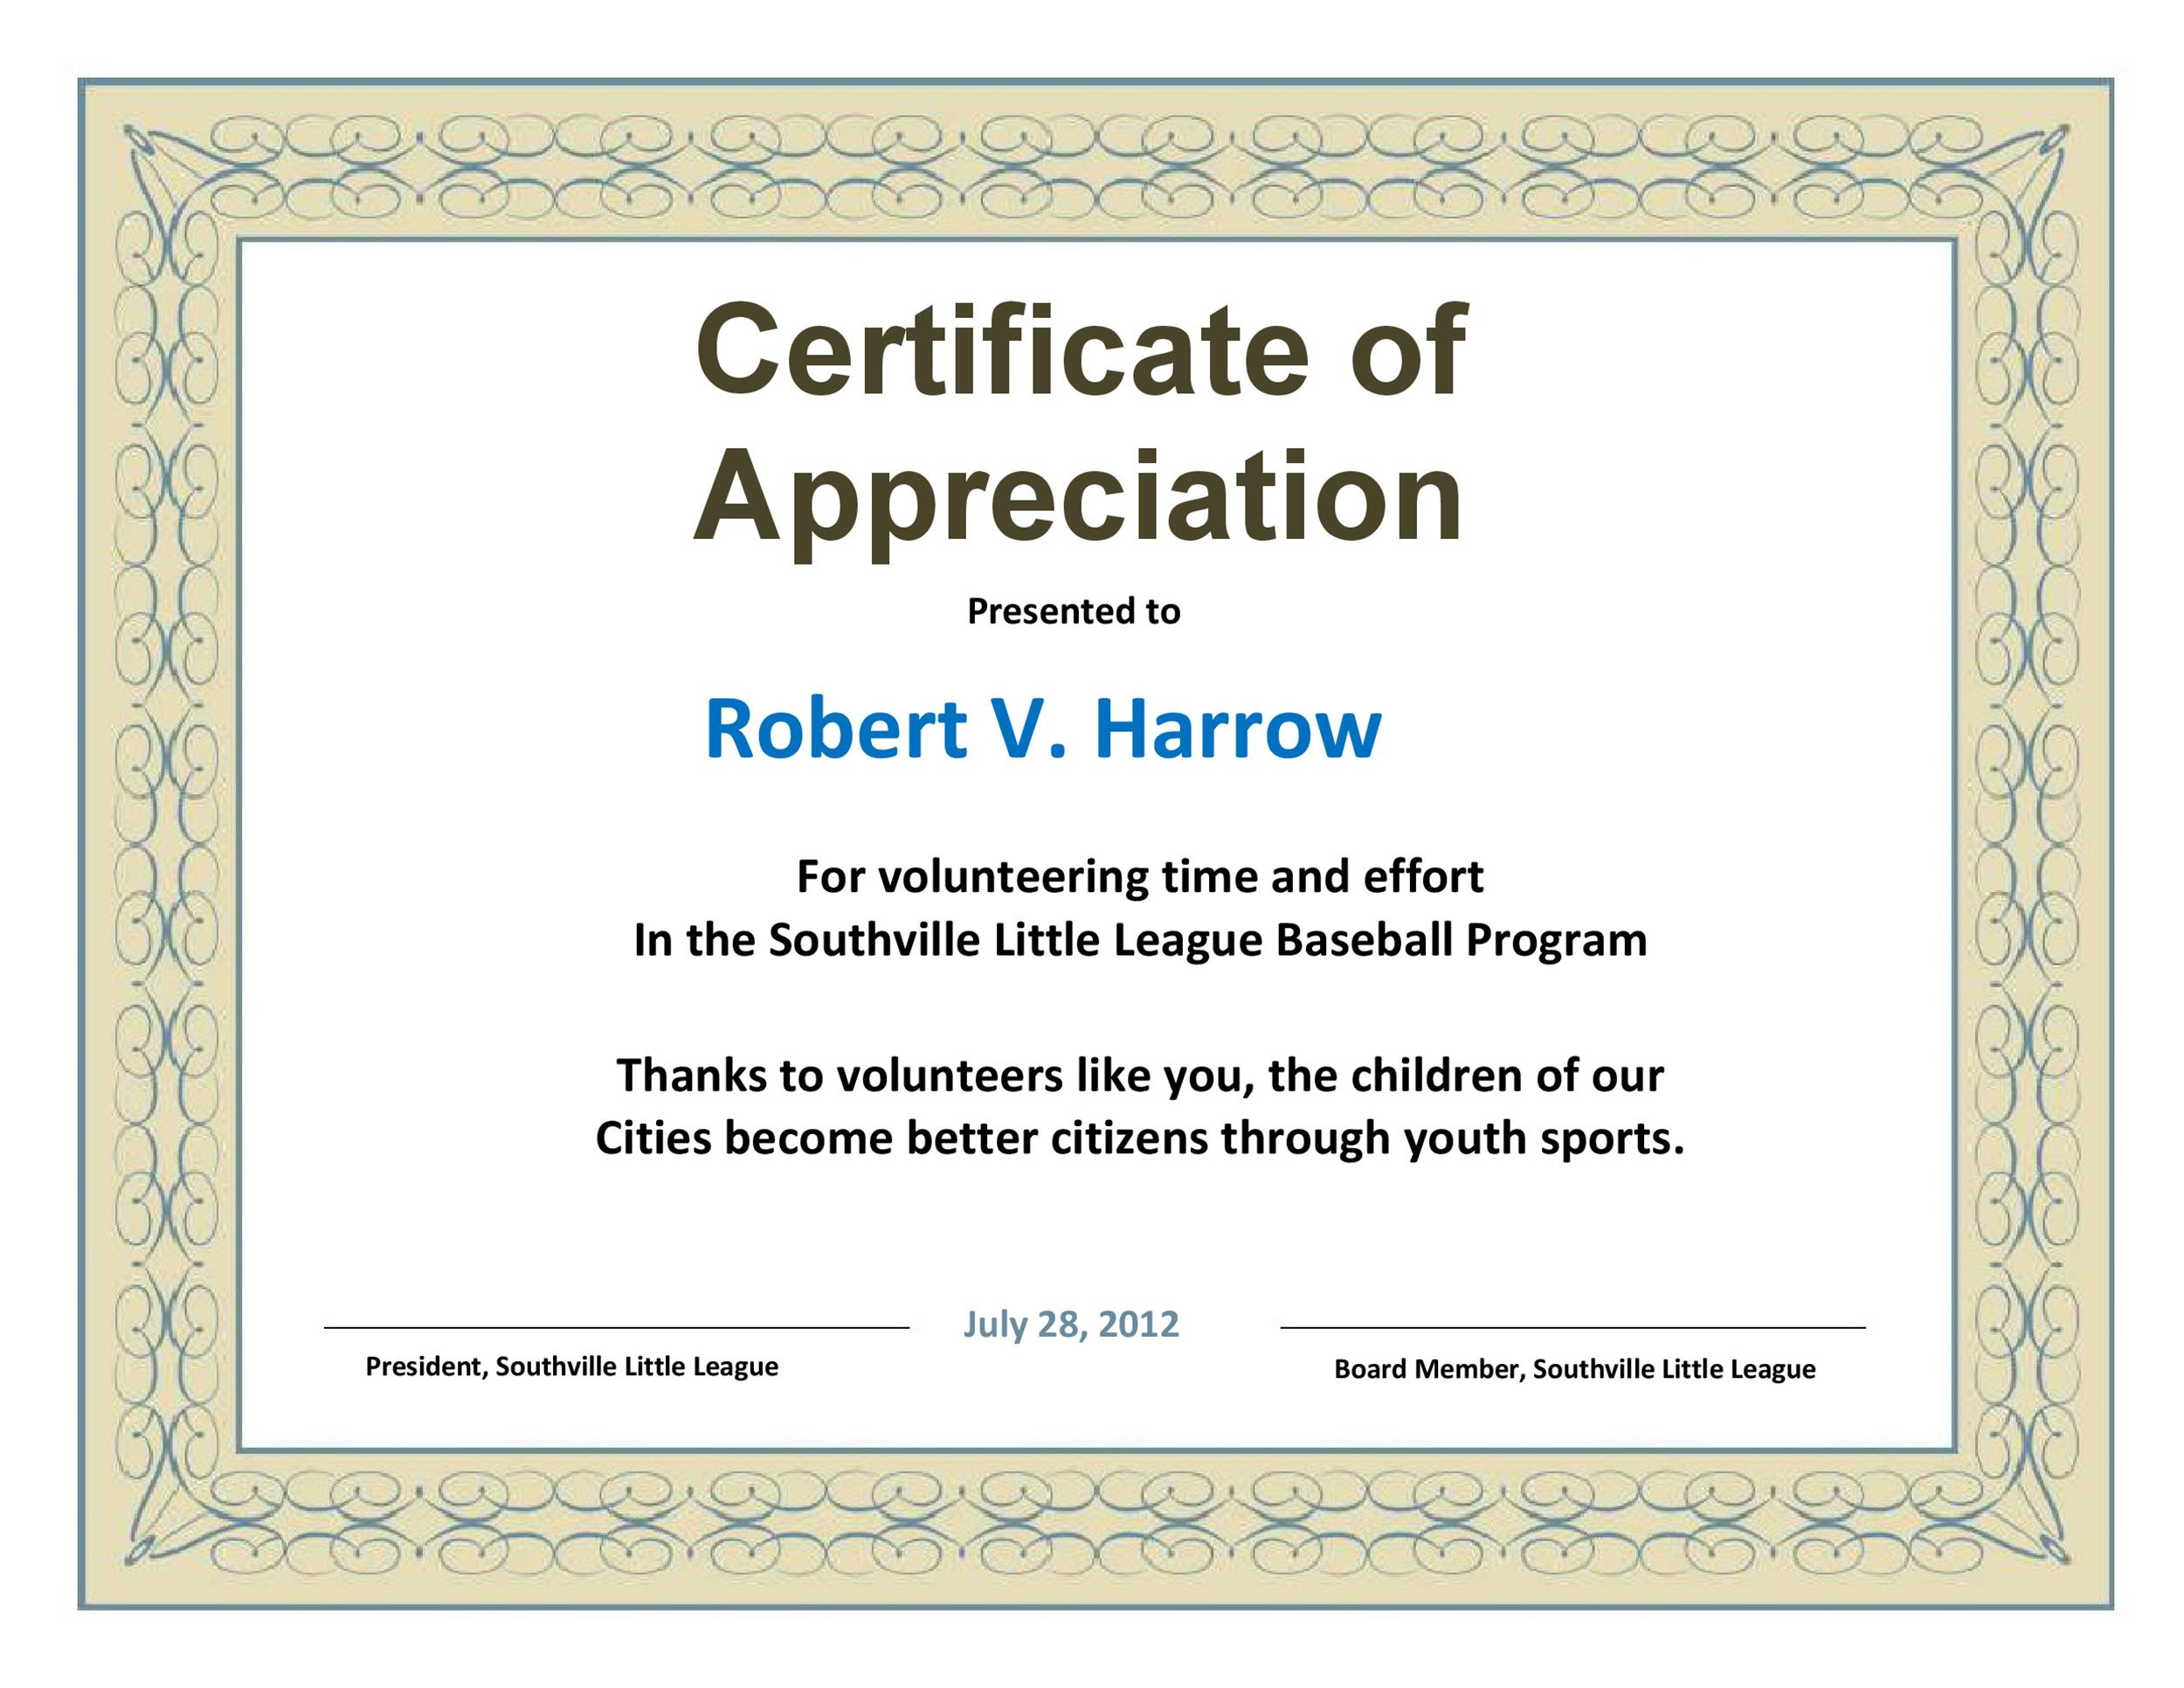 30 Free Certificate of Appreciation Templates and Letters - Examples Of Certificates Of Recognition